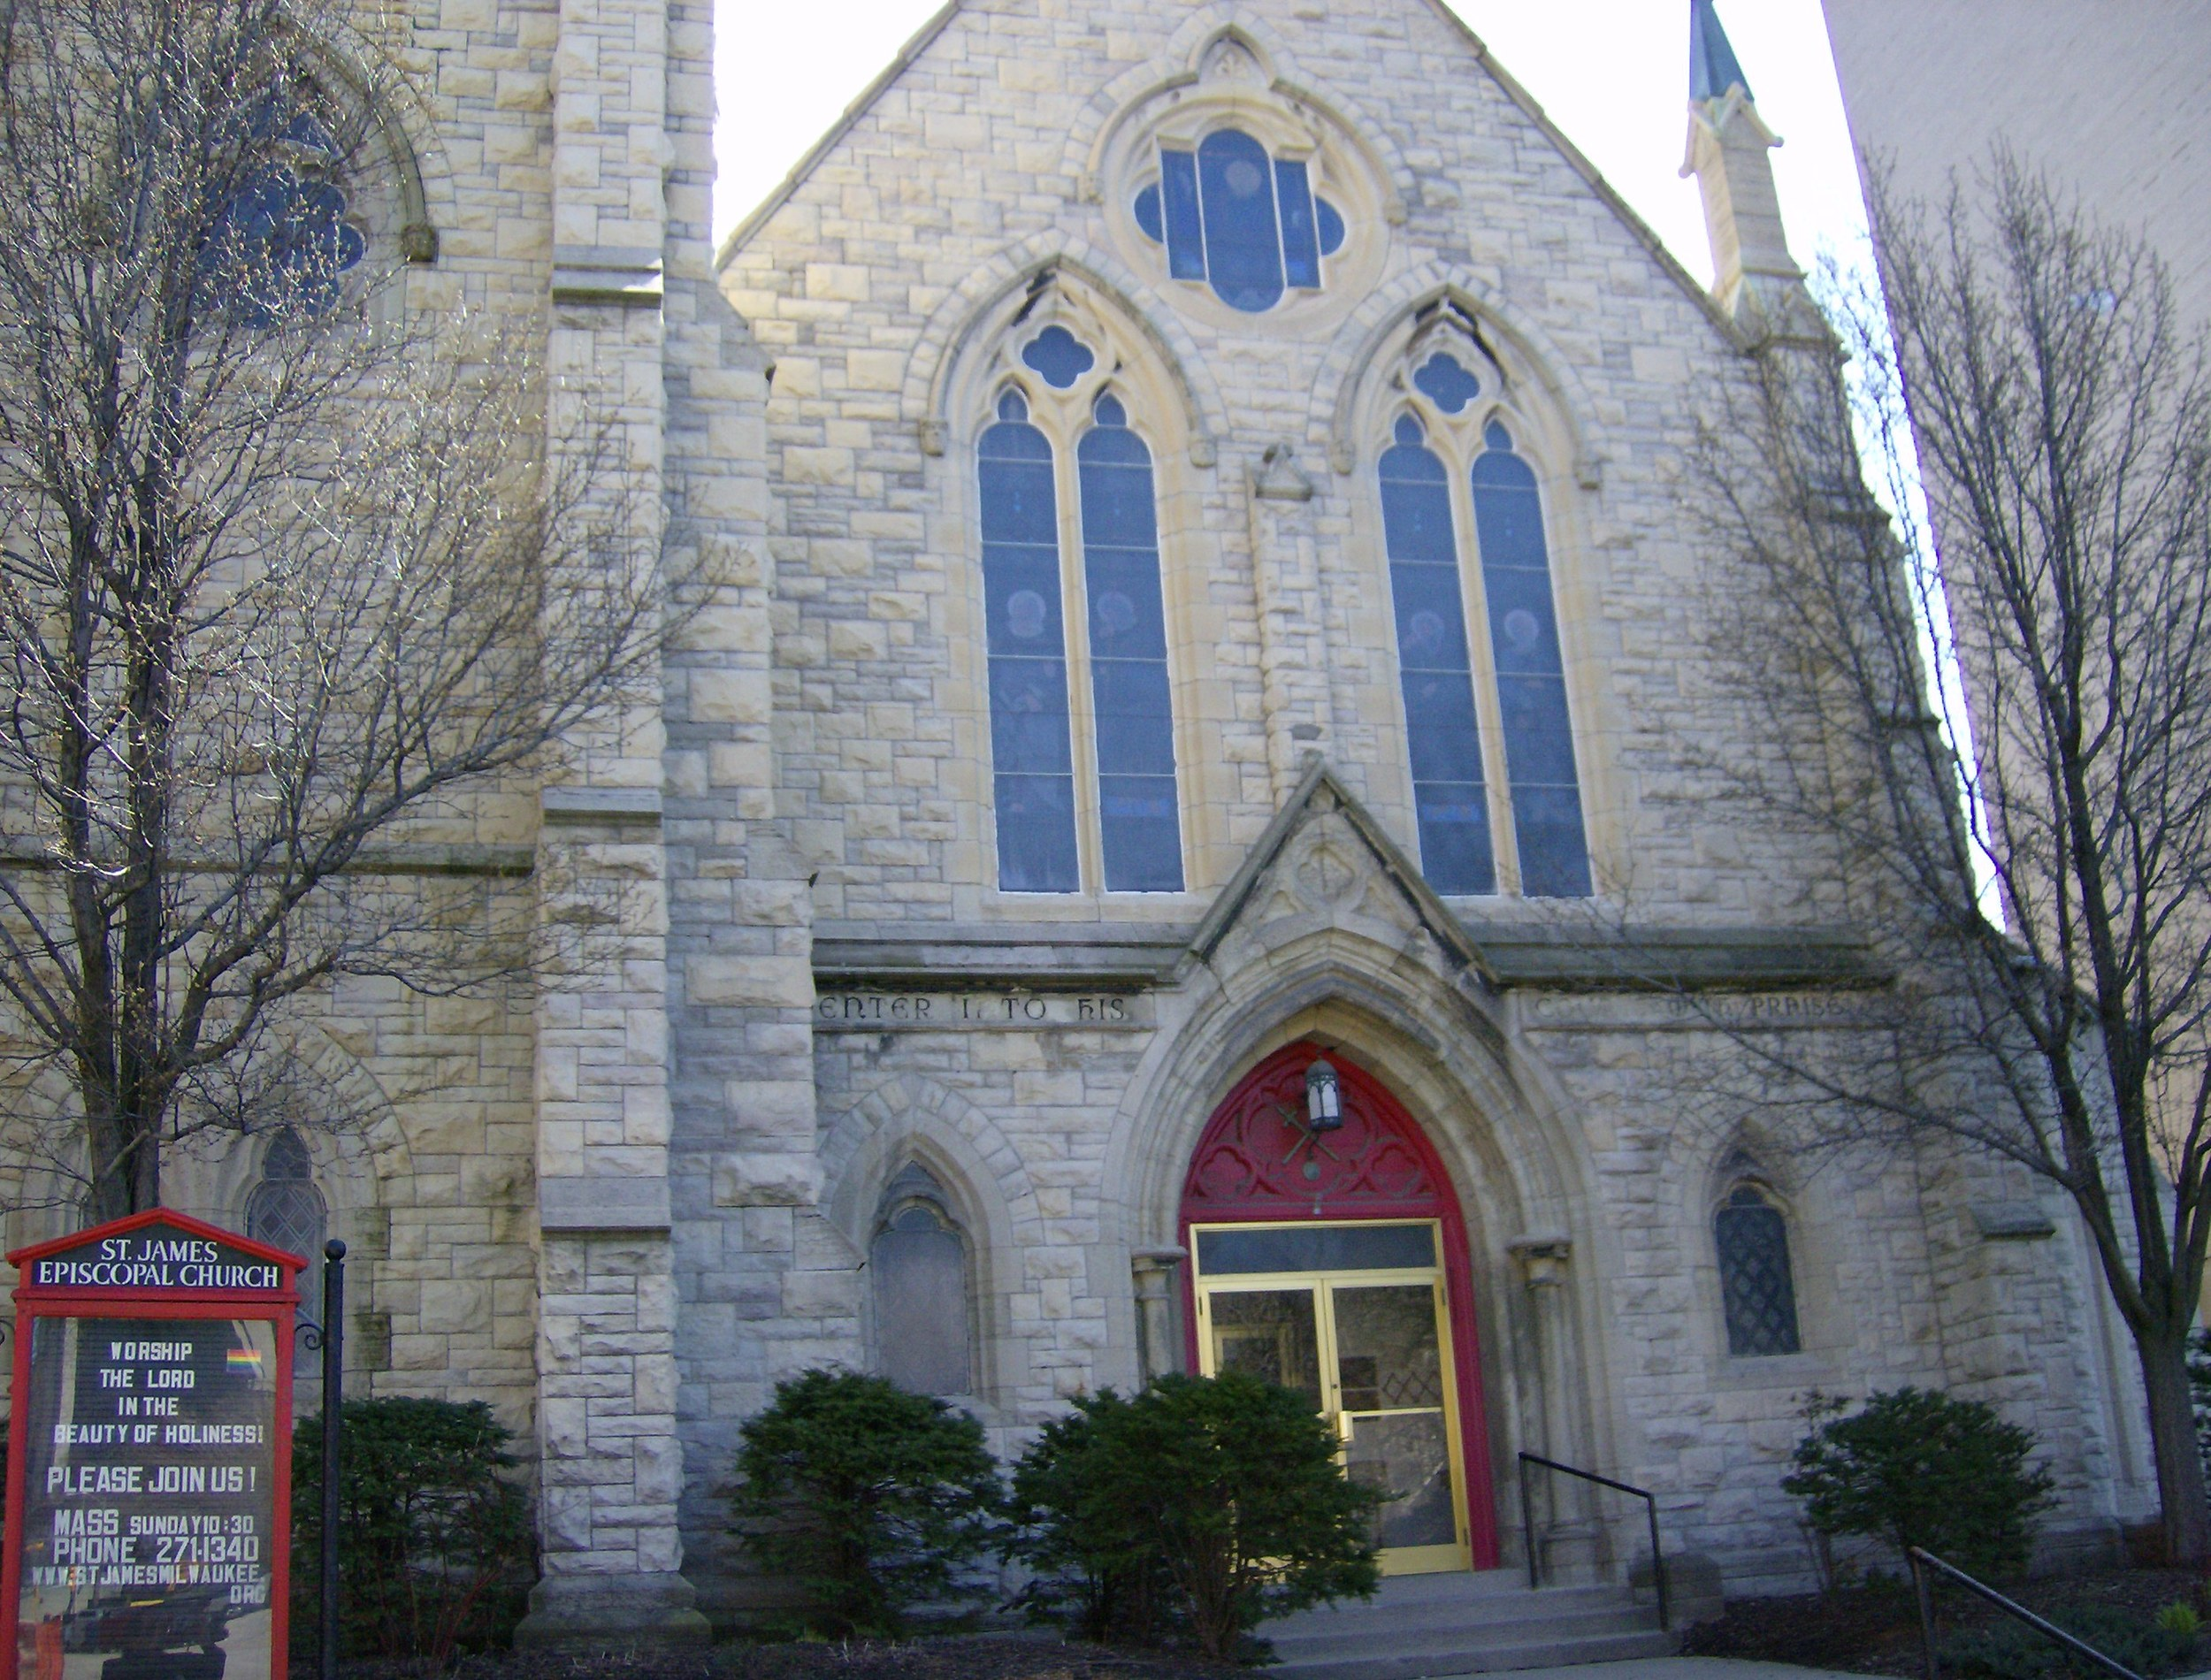 View of the front of St. James Episcopal Church